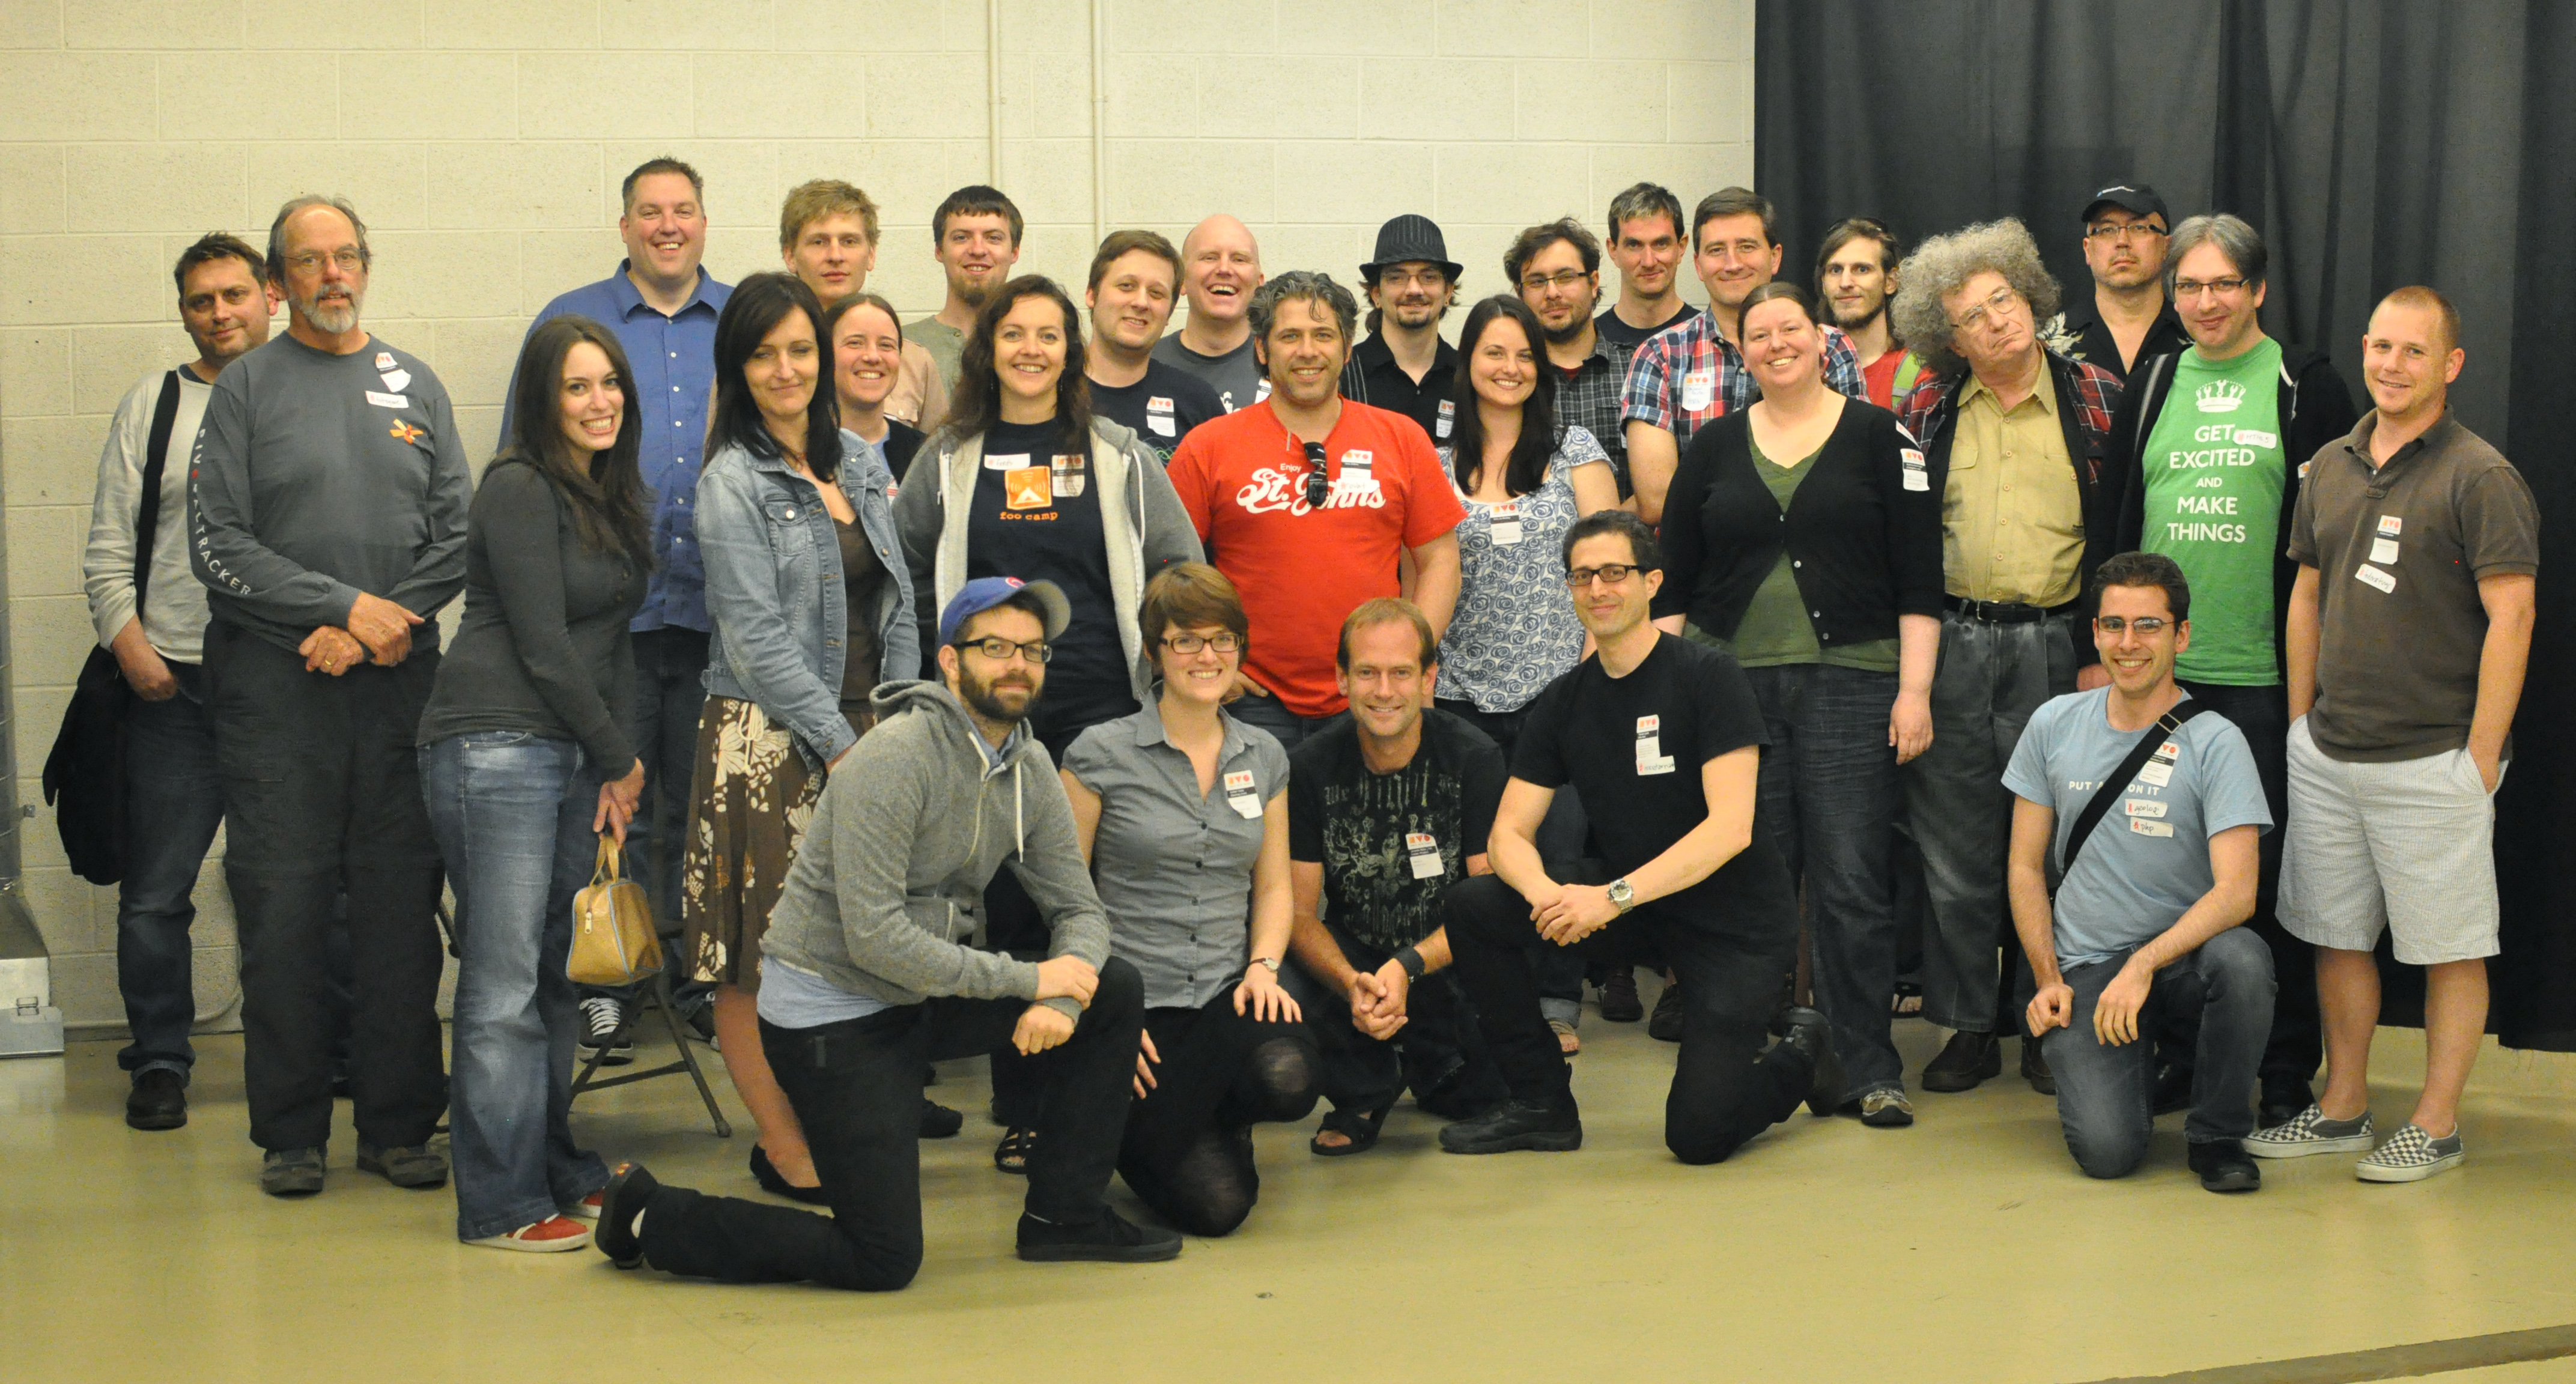 Photograph of the first IndieWebCamp participants, 2011, in Portland, Oregon